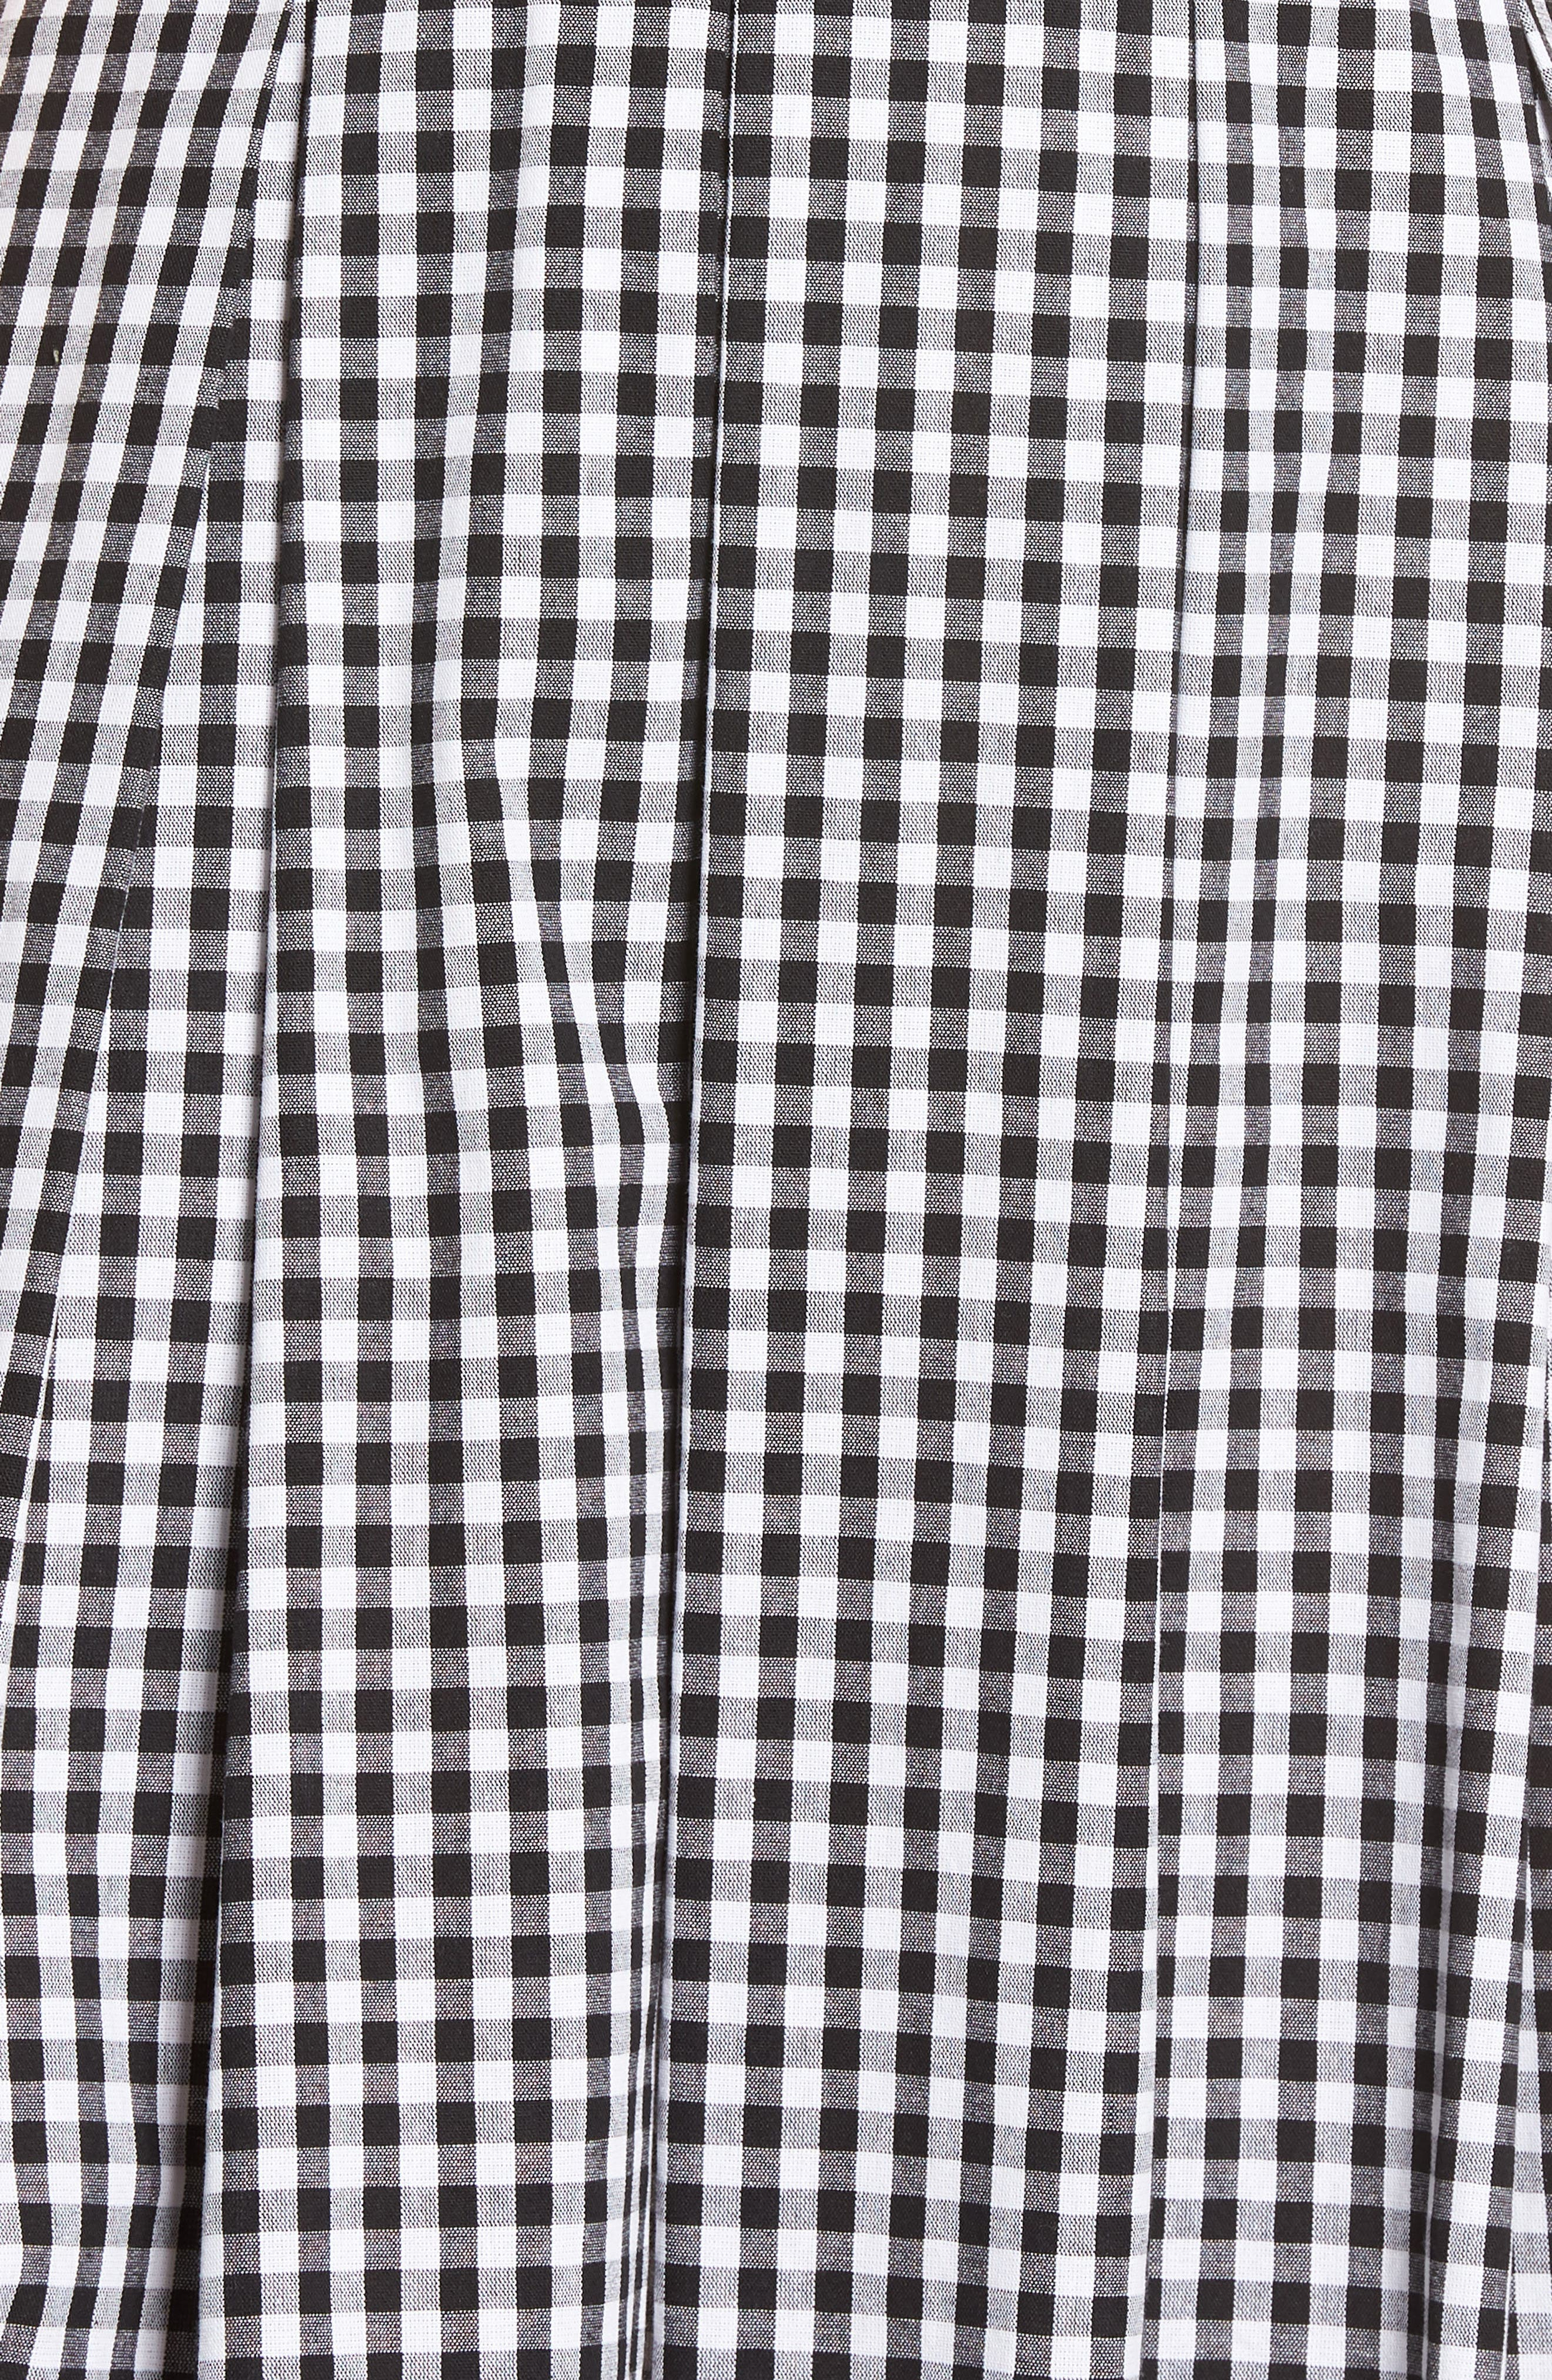 Gingham Halter Dress,                             Alternate thumbnail 6, color,                             Black- White Gingham